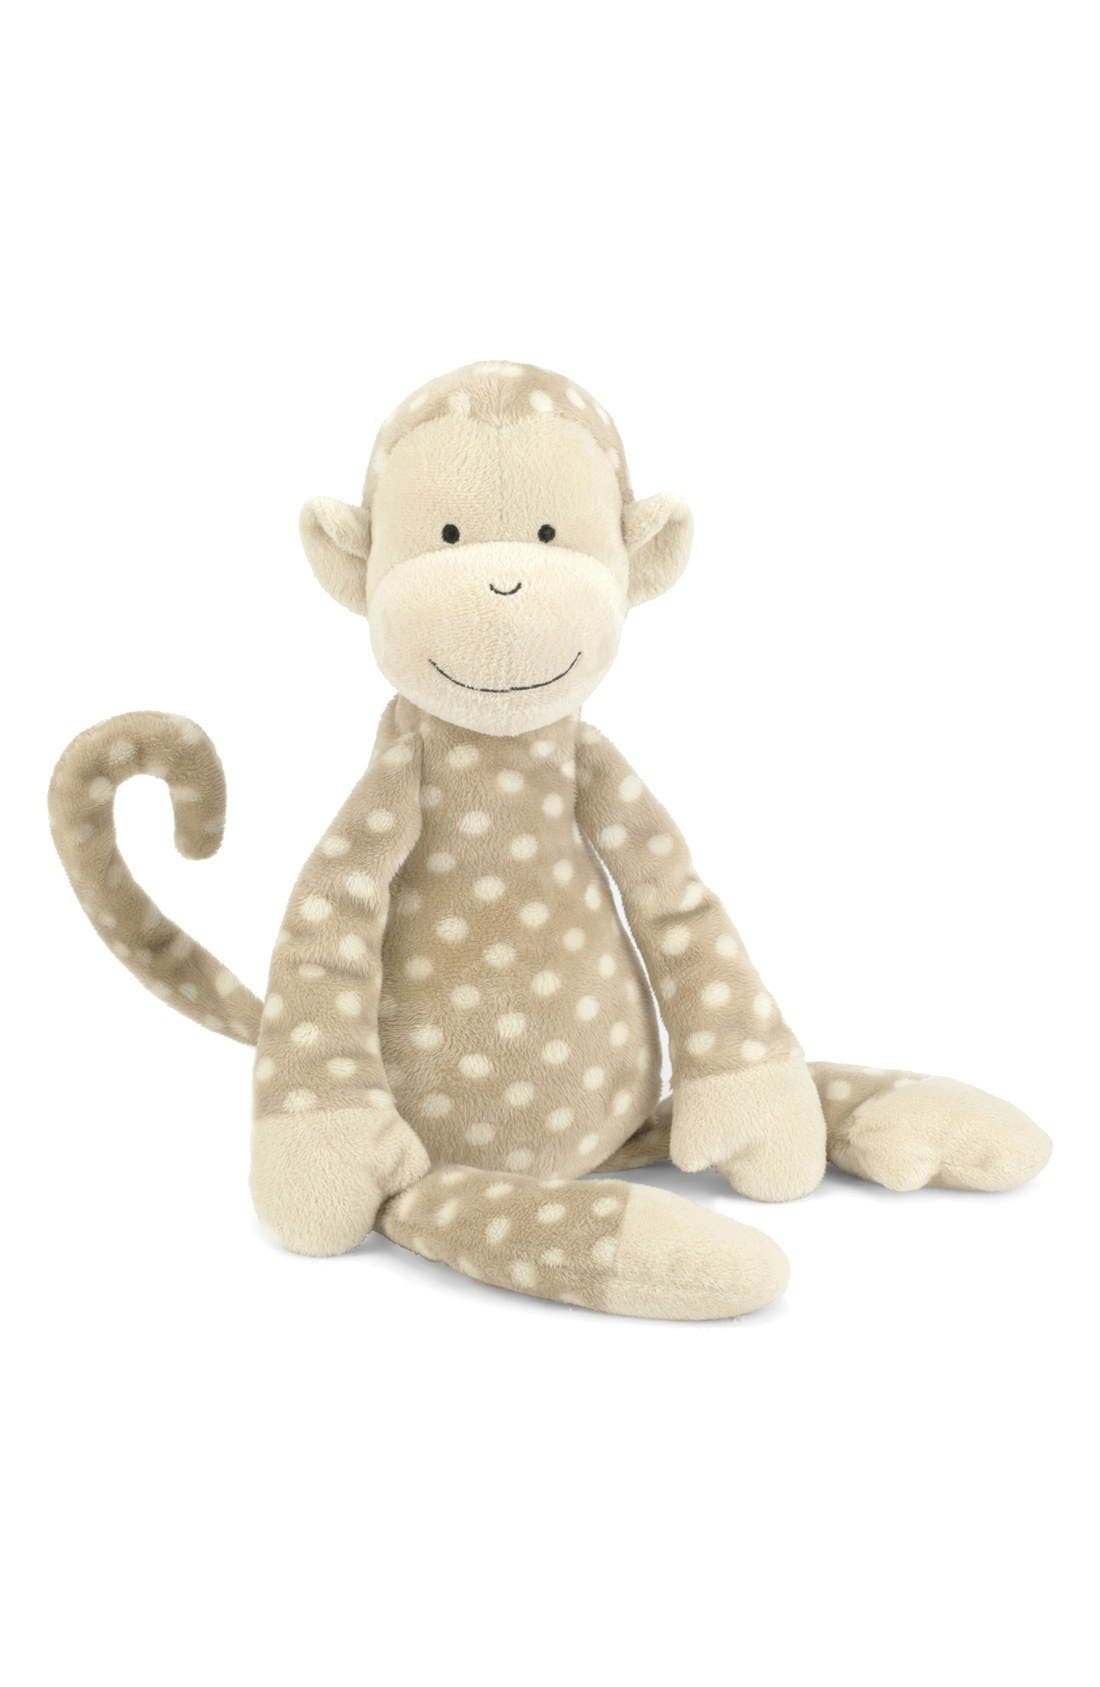 Jellycat 'Monty Monkey' Stuffed Animal